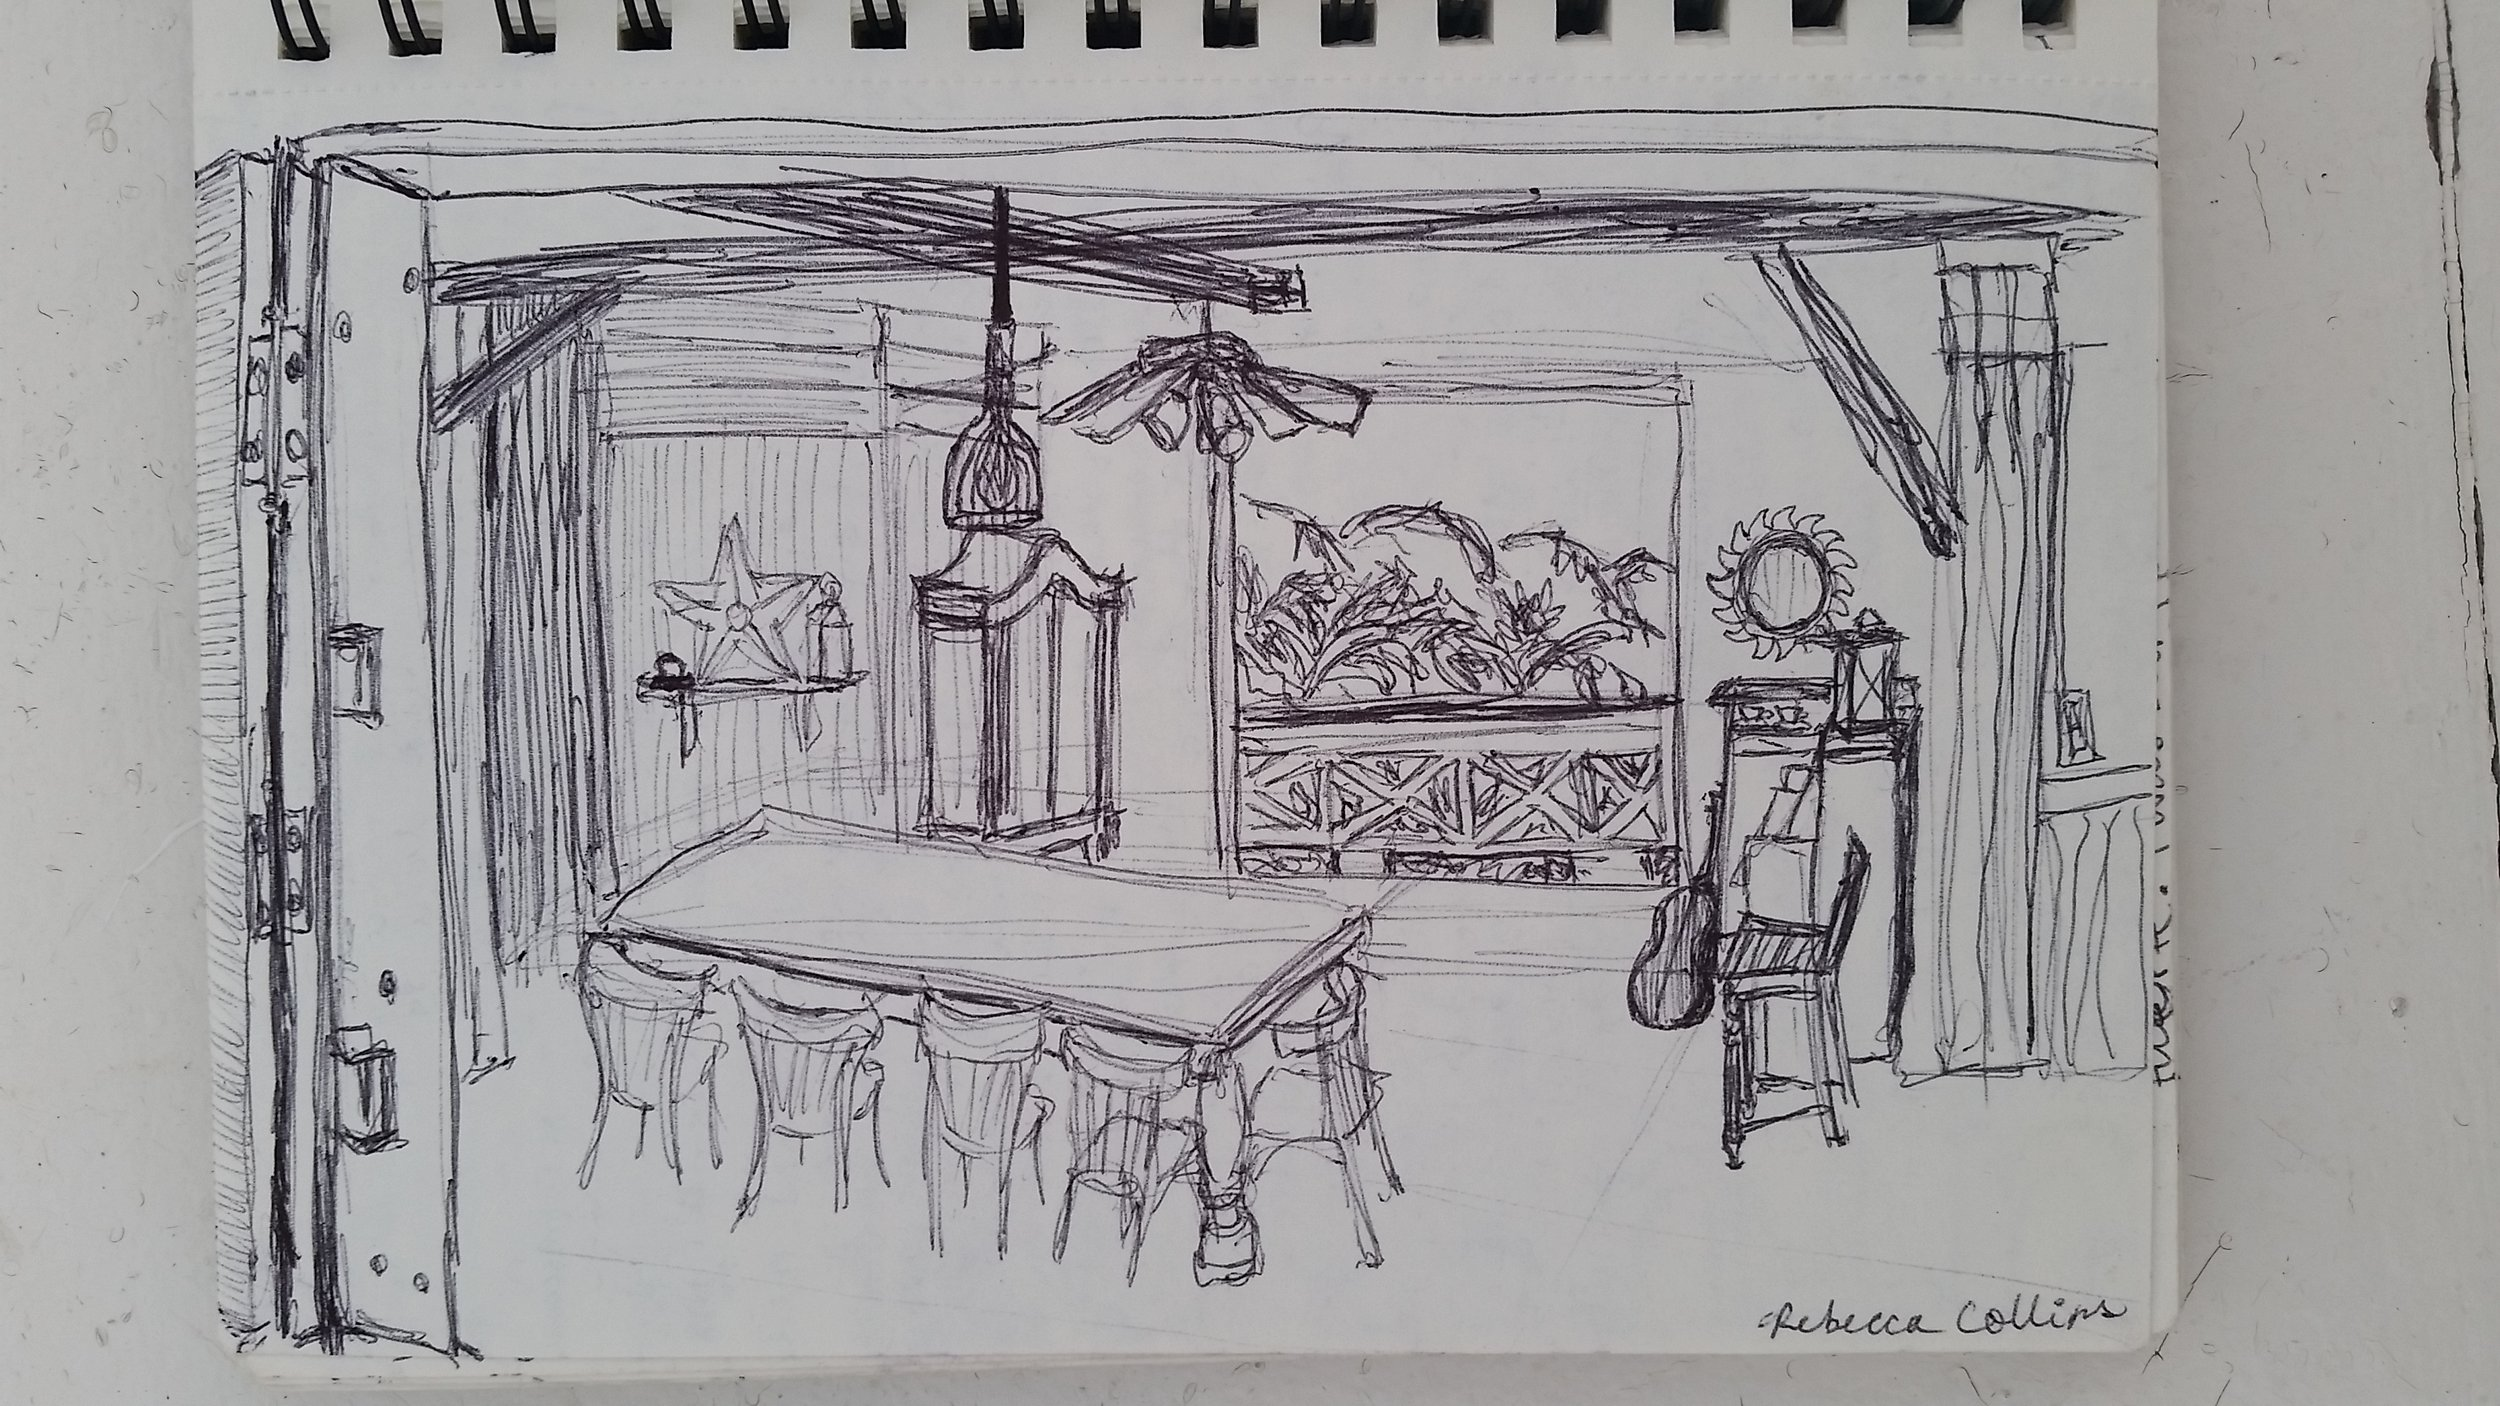 My sketch of a coffee farm house in Puerto Rico